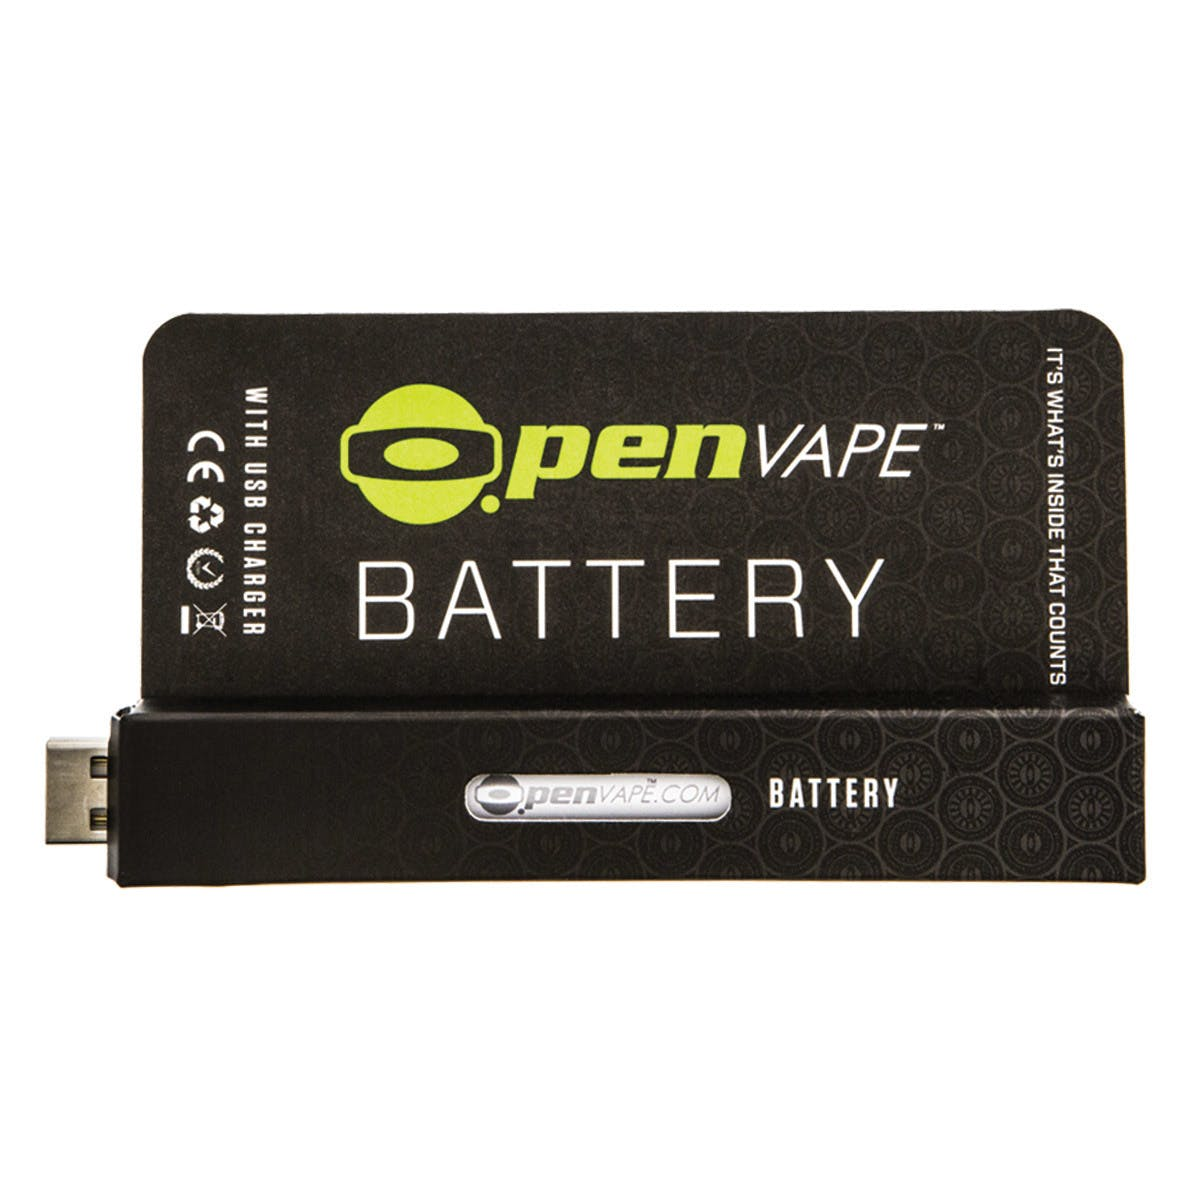 marijuana-dispensaries-natures-herbs-and-wellness-ii-in-log-lane-village-battery-and-charger